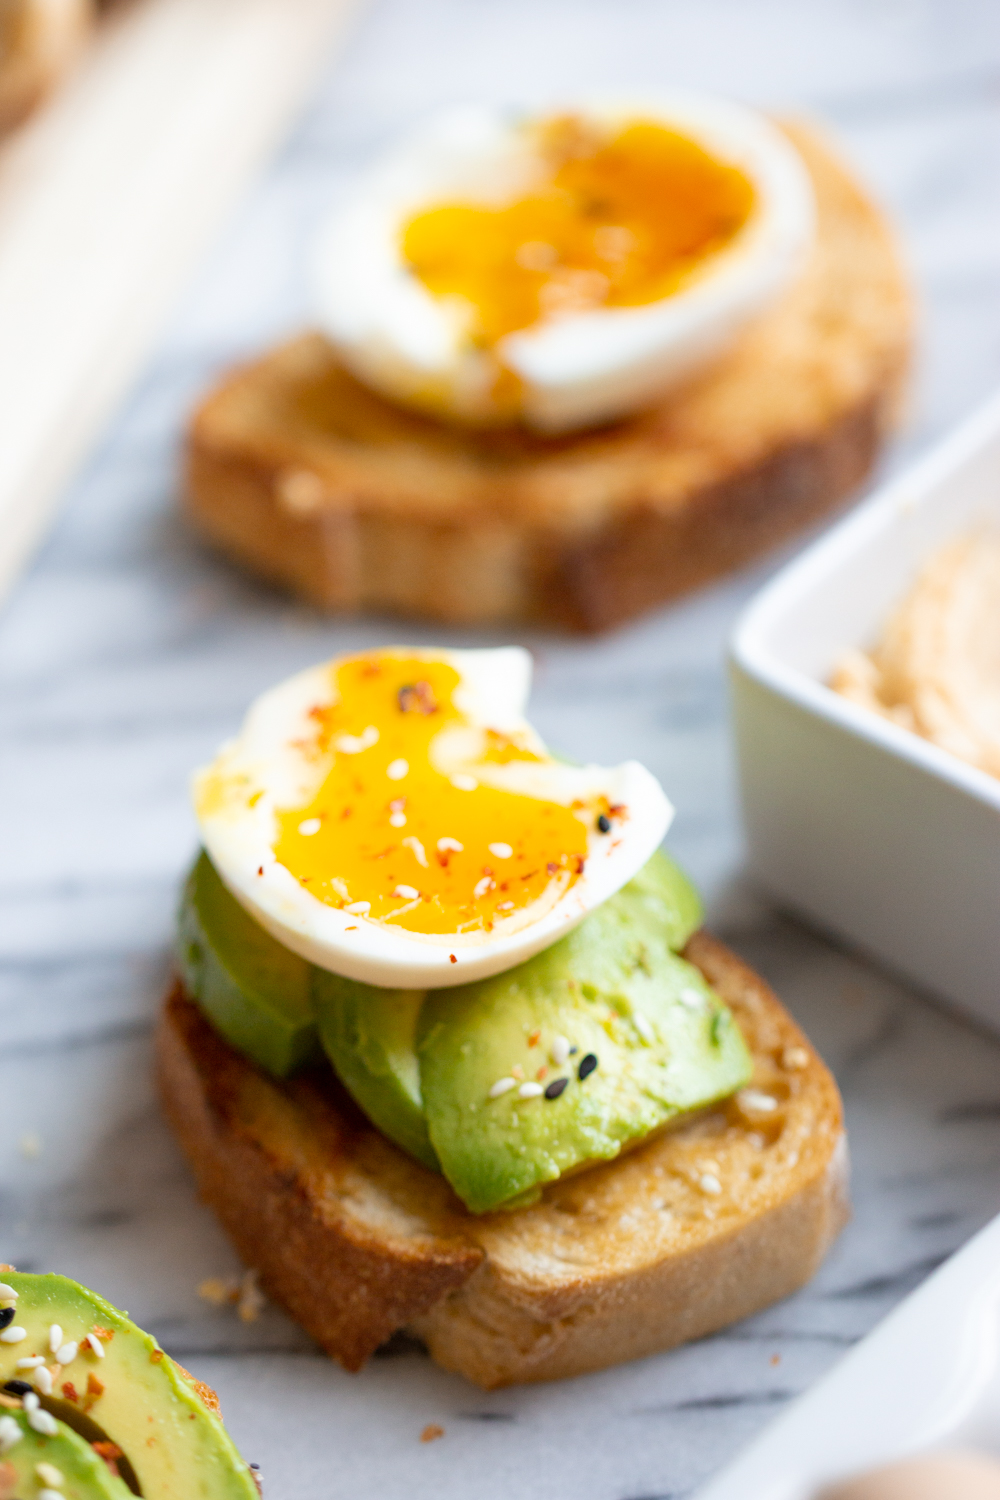 A flavorful miso butter toast for breakfast meal prep. Miso butter and egg toast is full of flavor and protein so it keeps me full until lunch! Super simple and completely delicious.